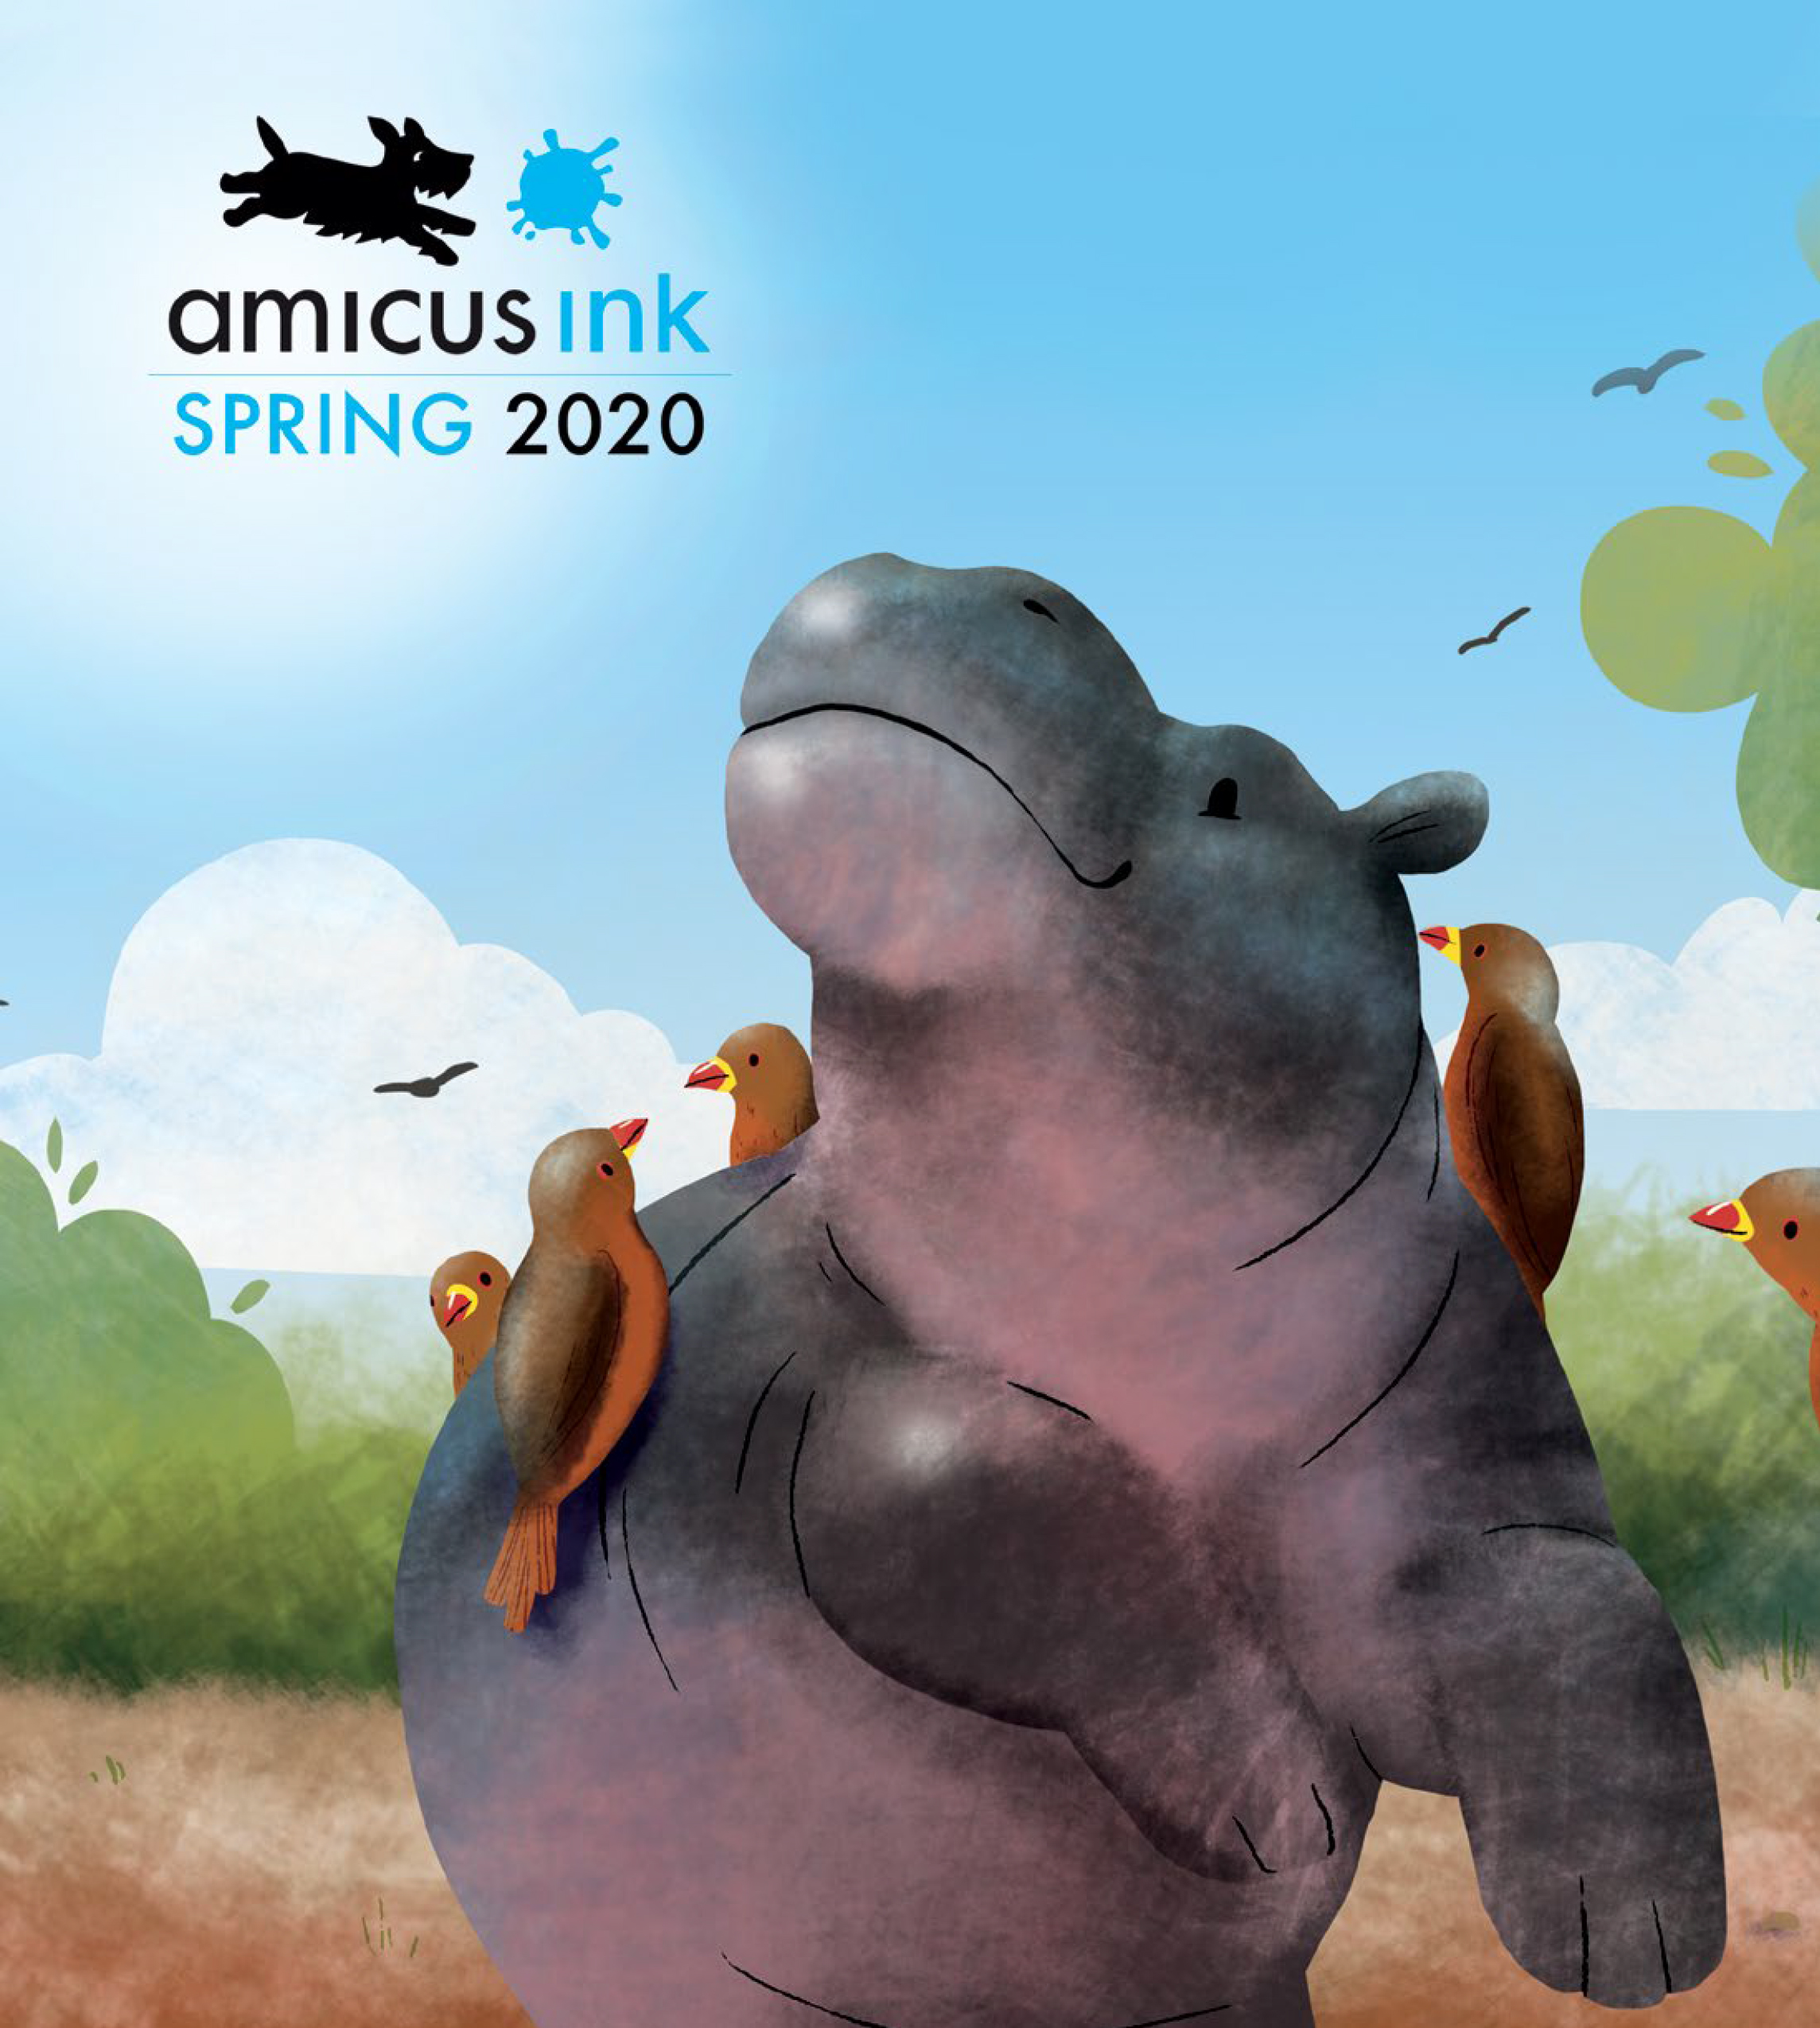 Spring 2020 Amicus Ink Retail Catalog